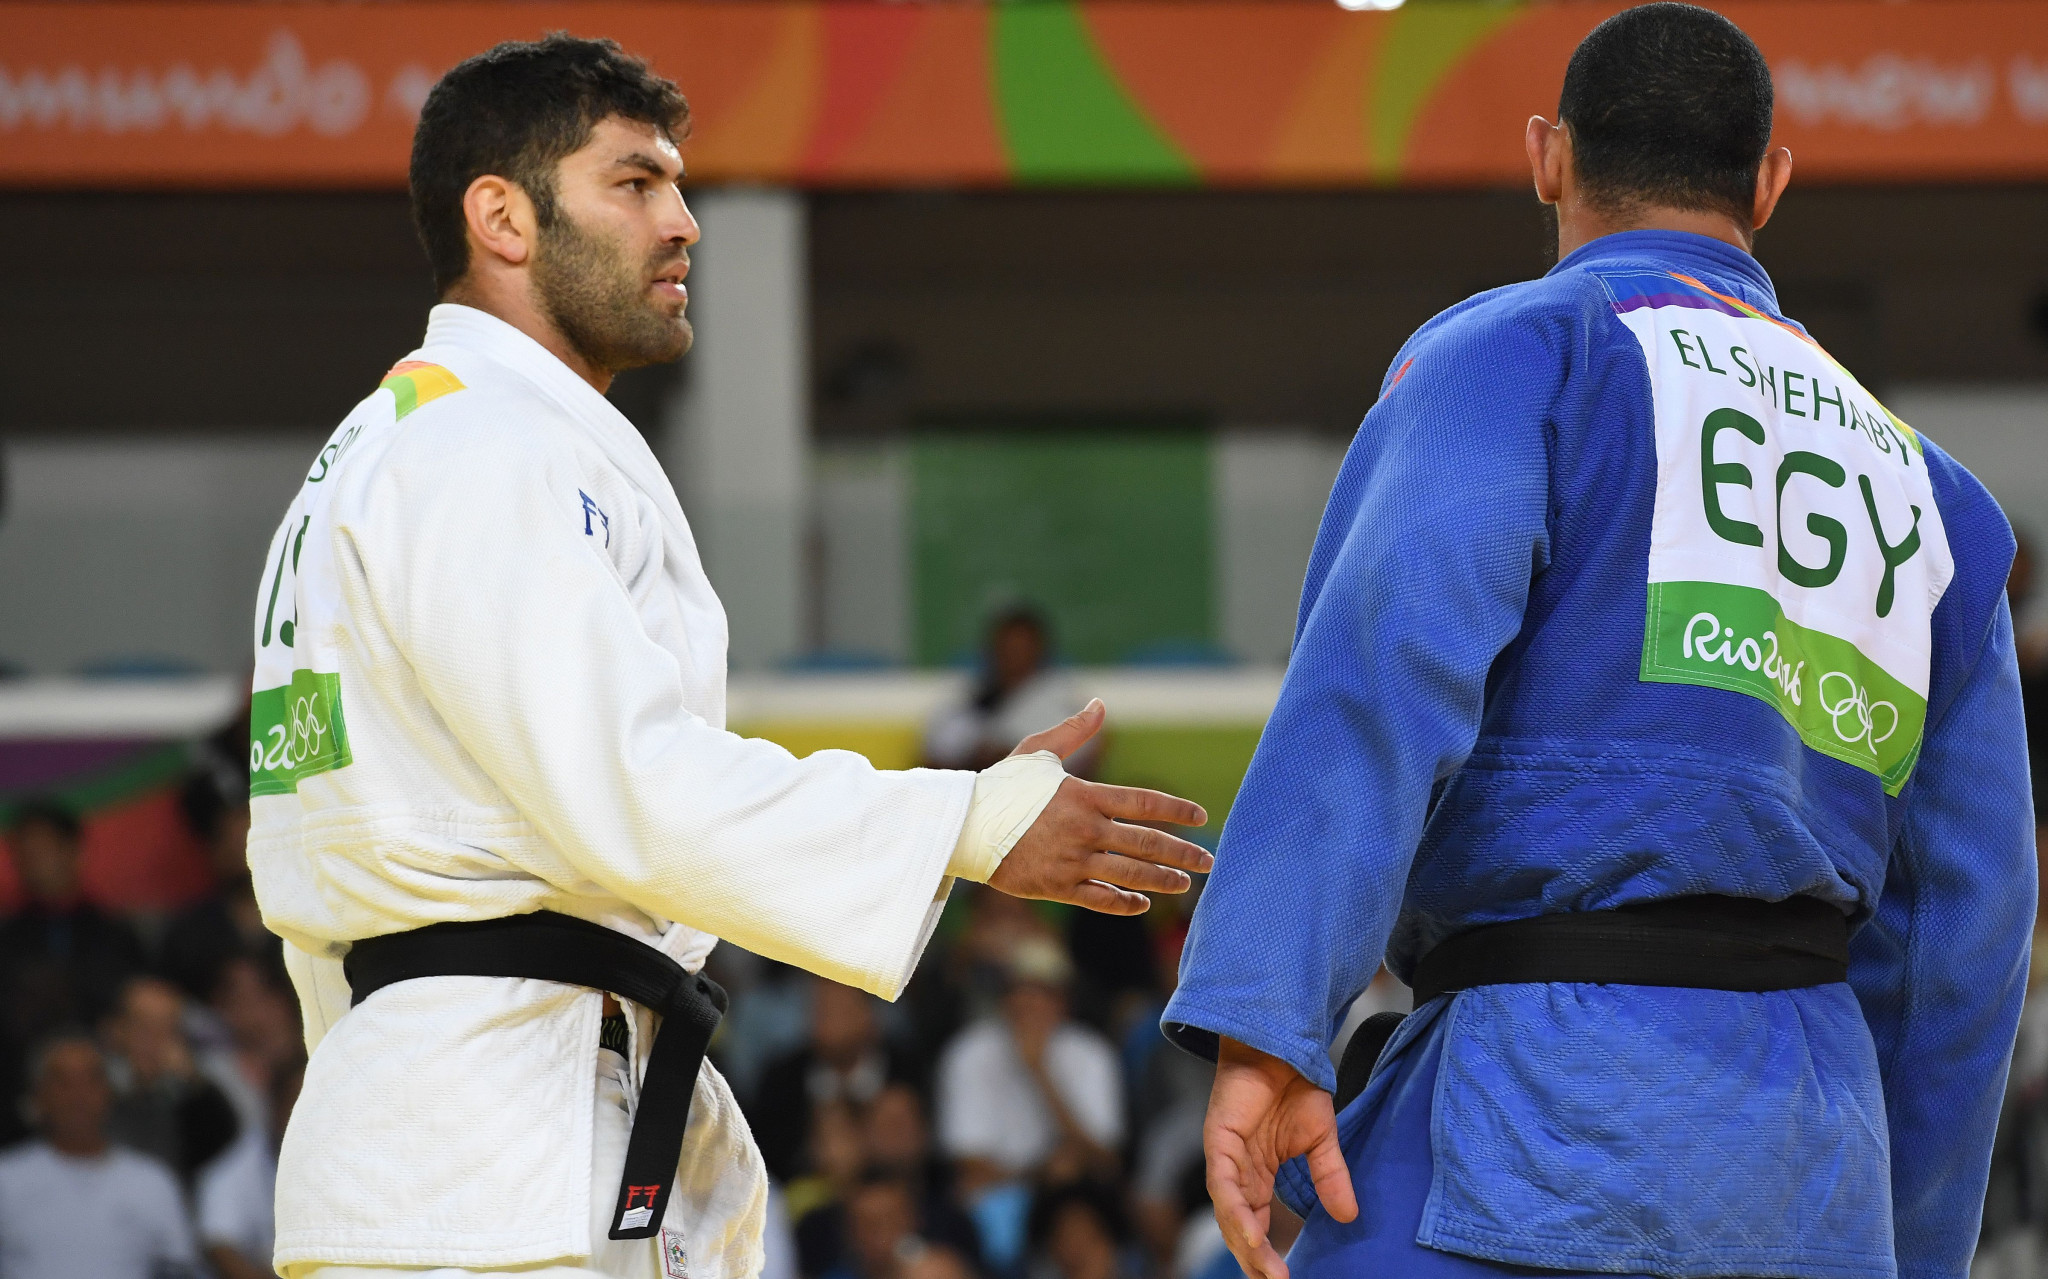 Egyptian judoka Islam El Shehaby refused to shake the hand of bronze medallist Or Sasson following a preliminary round loss at under 100 kilograms at Rio 2016 ©Getty Images